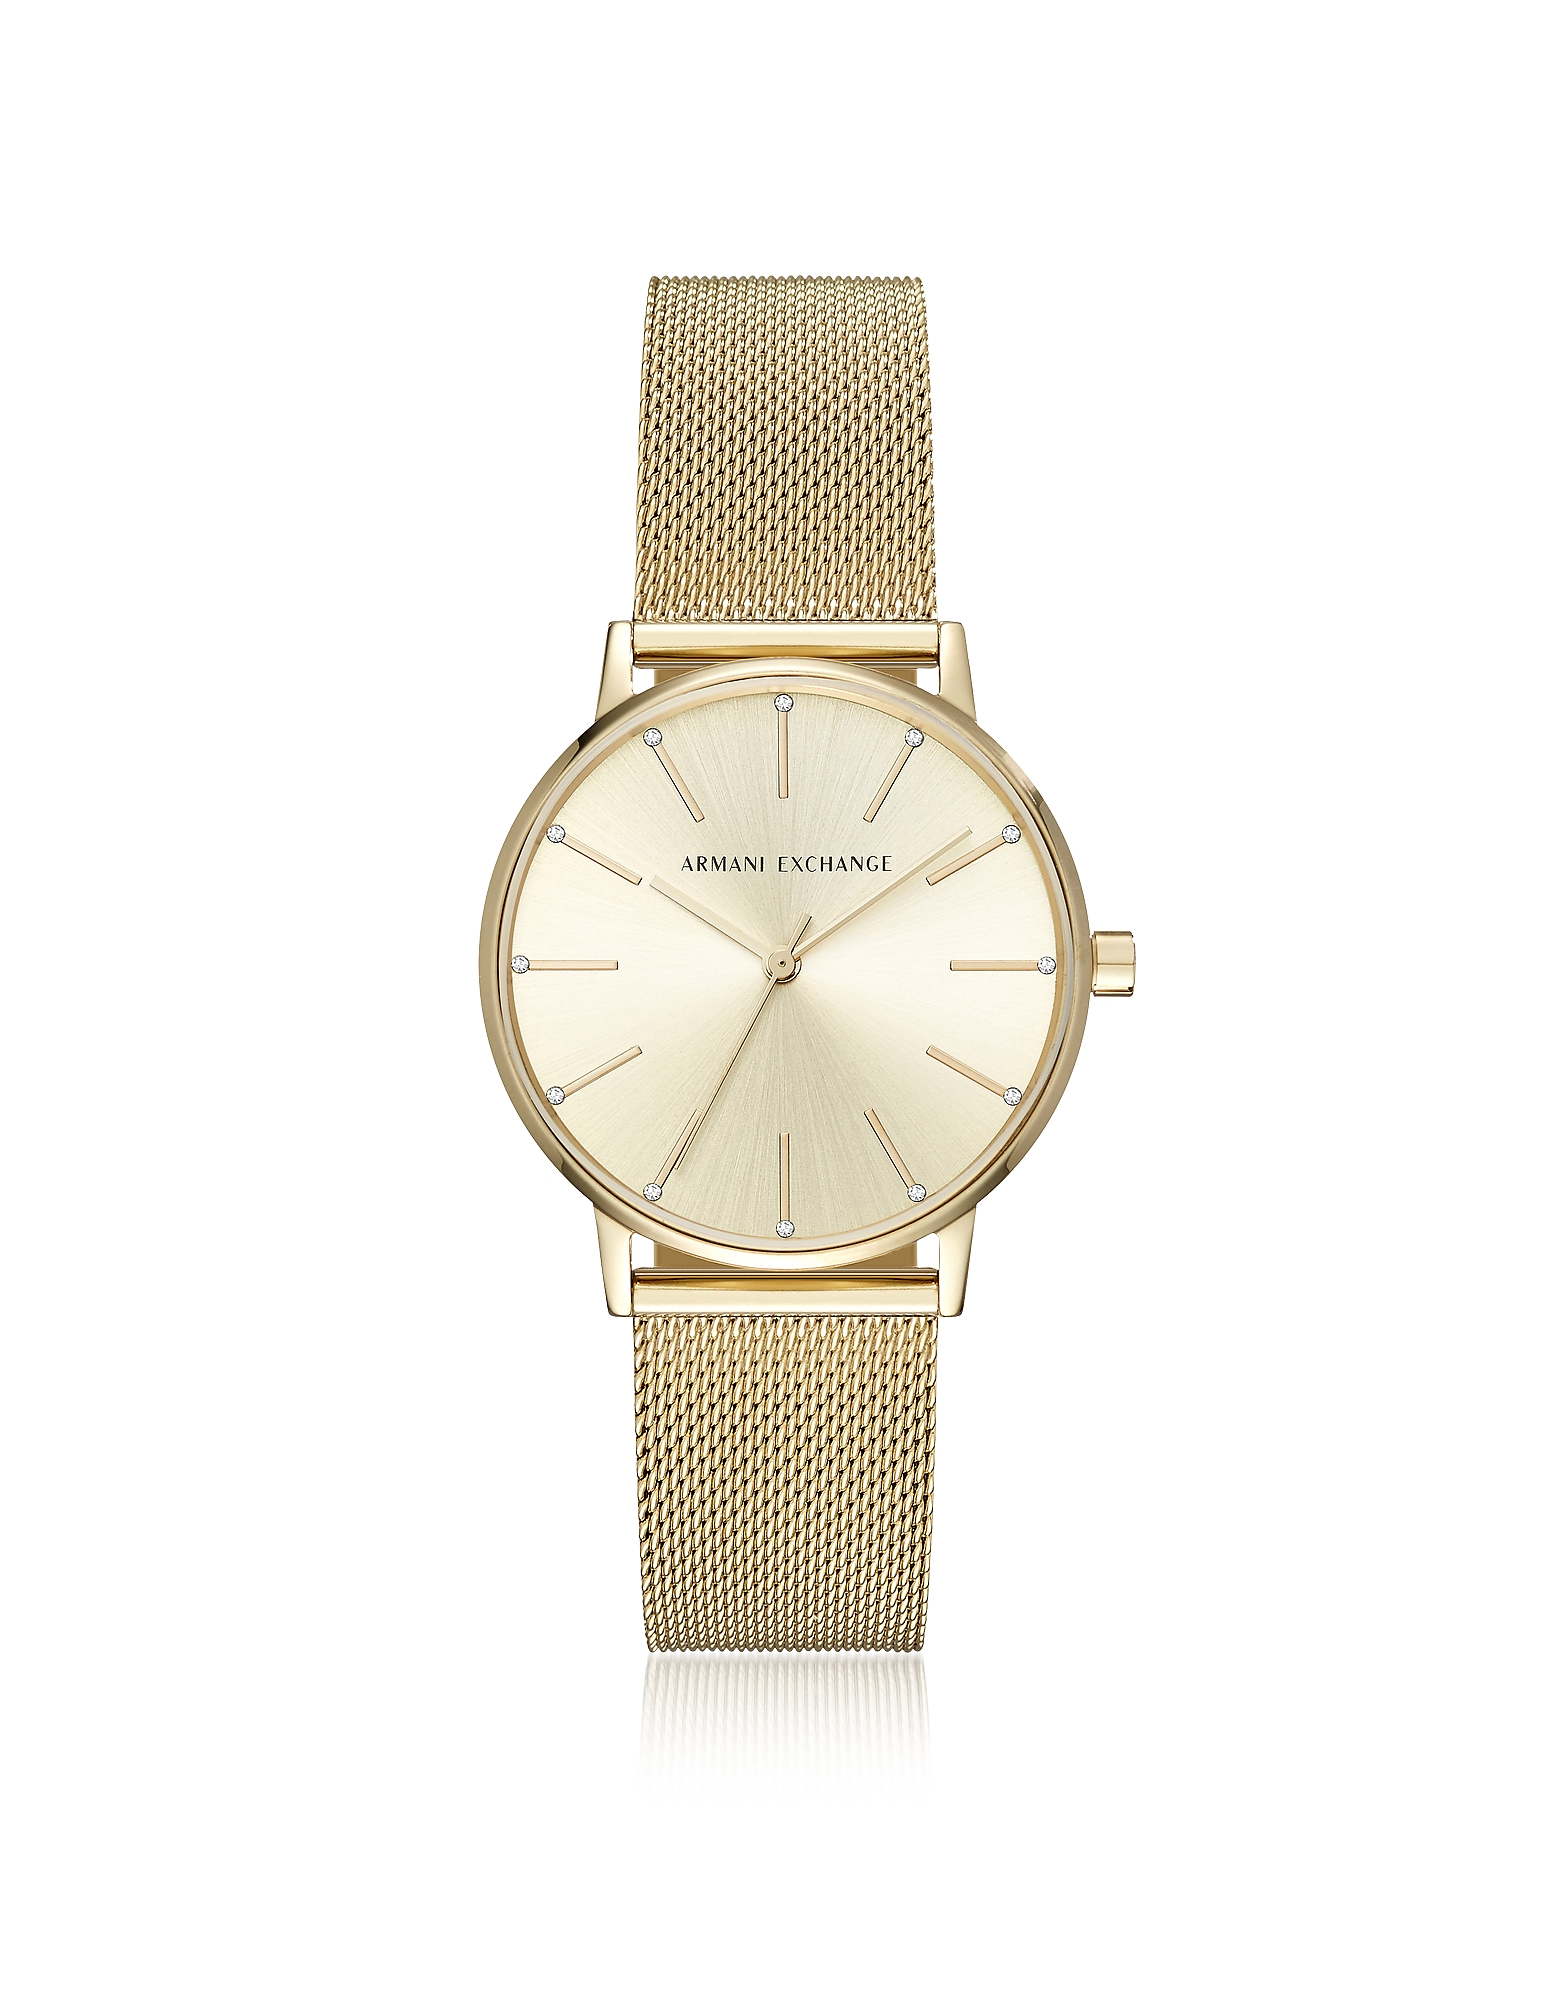 Armani Exchange Women's Watches, Lola Gold Tone Mesh Women's Watch